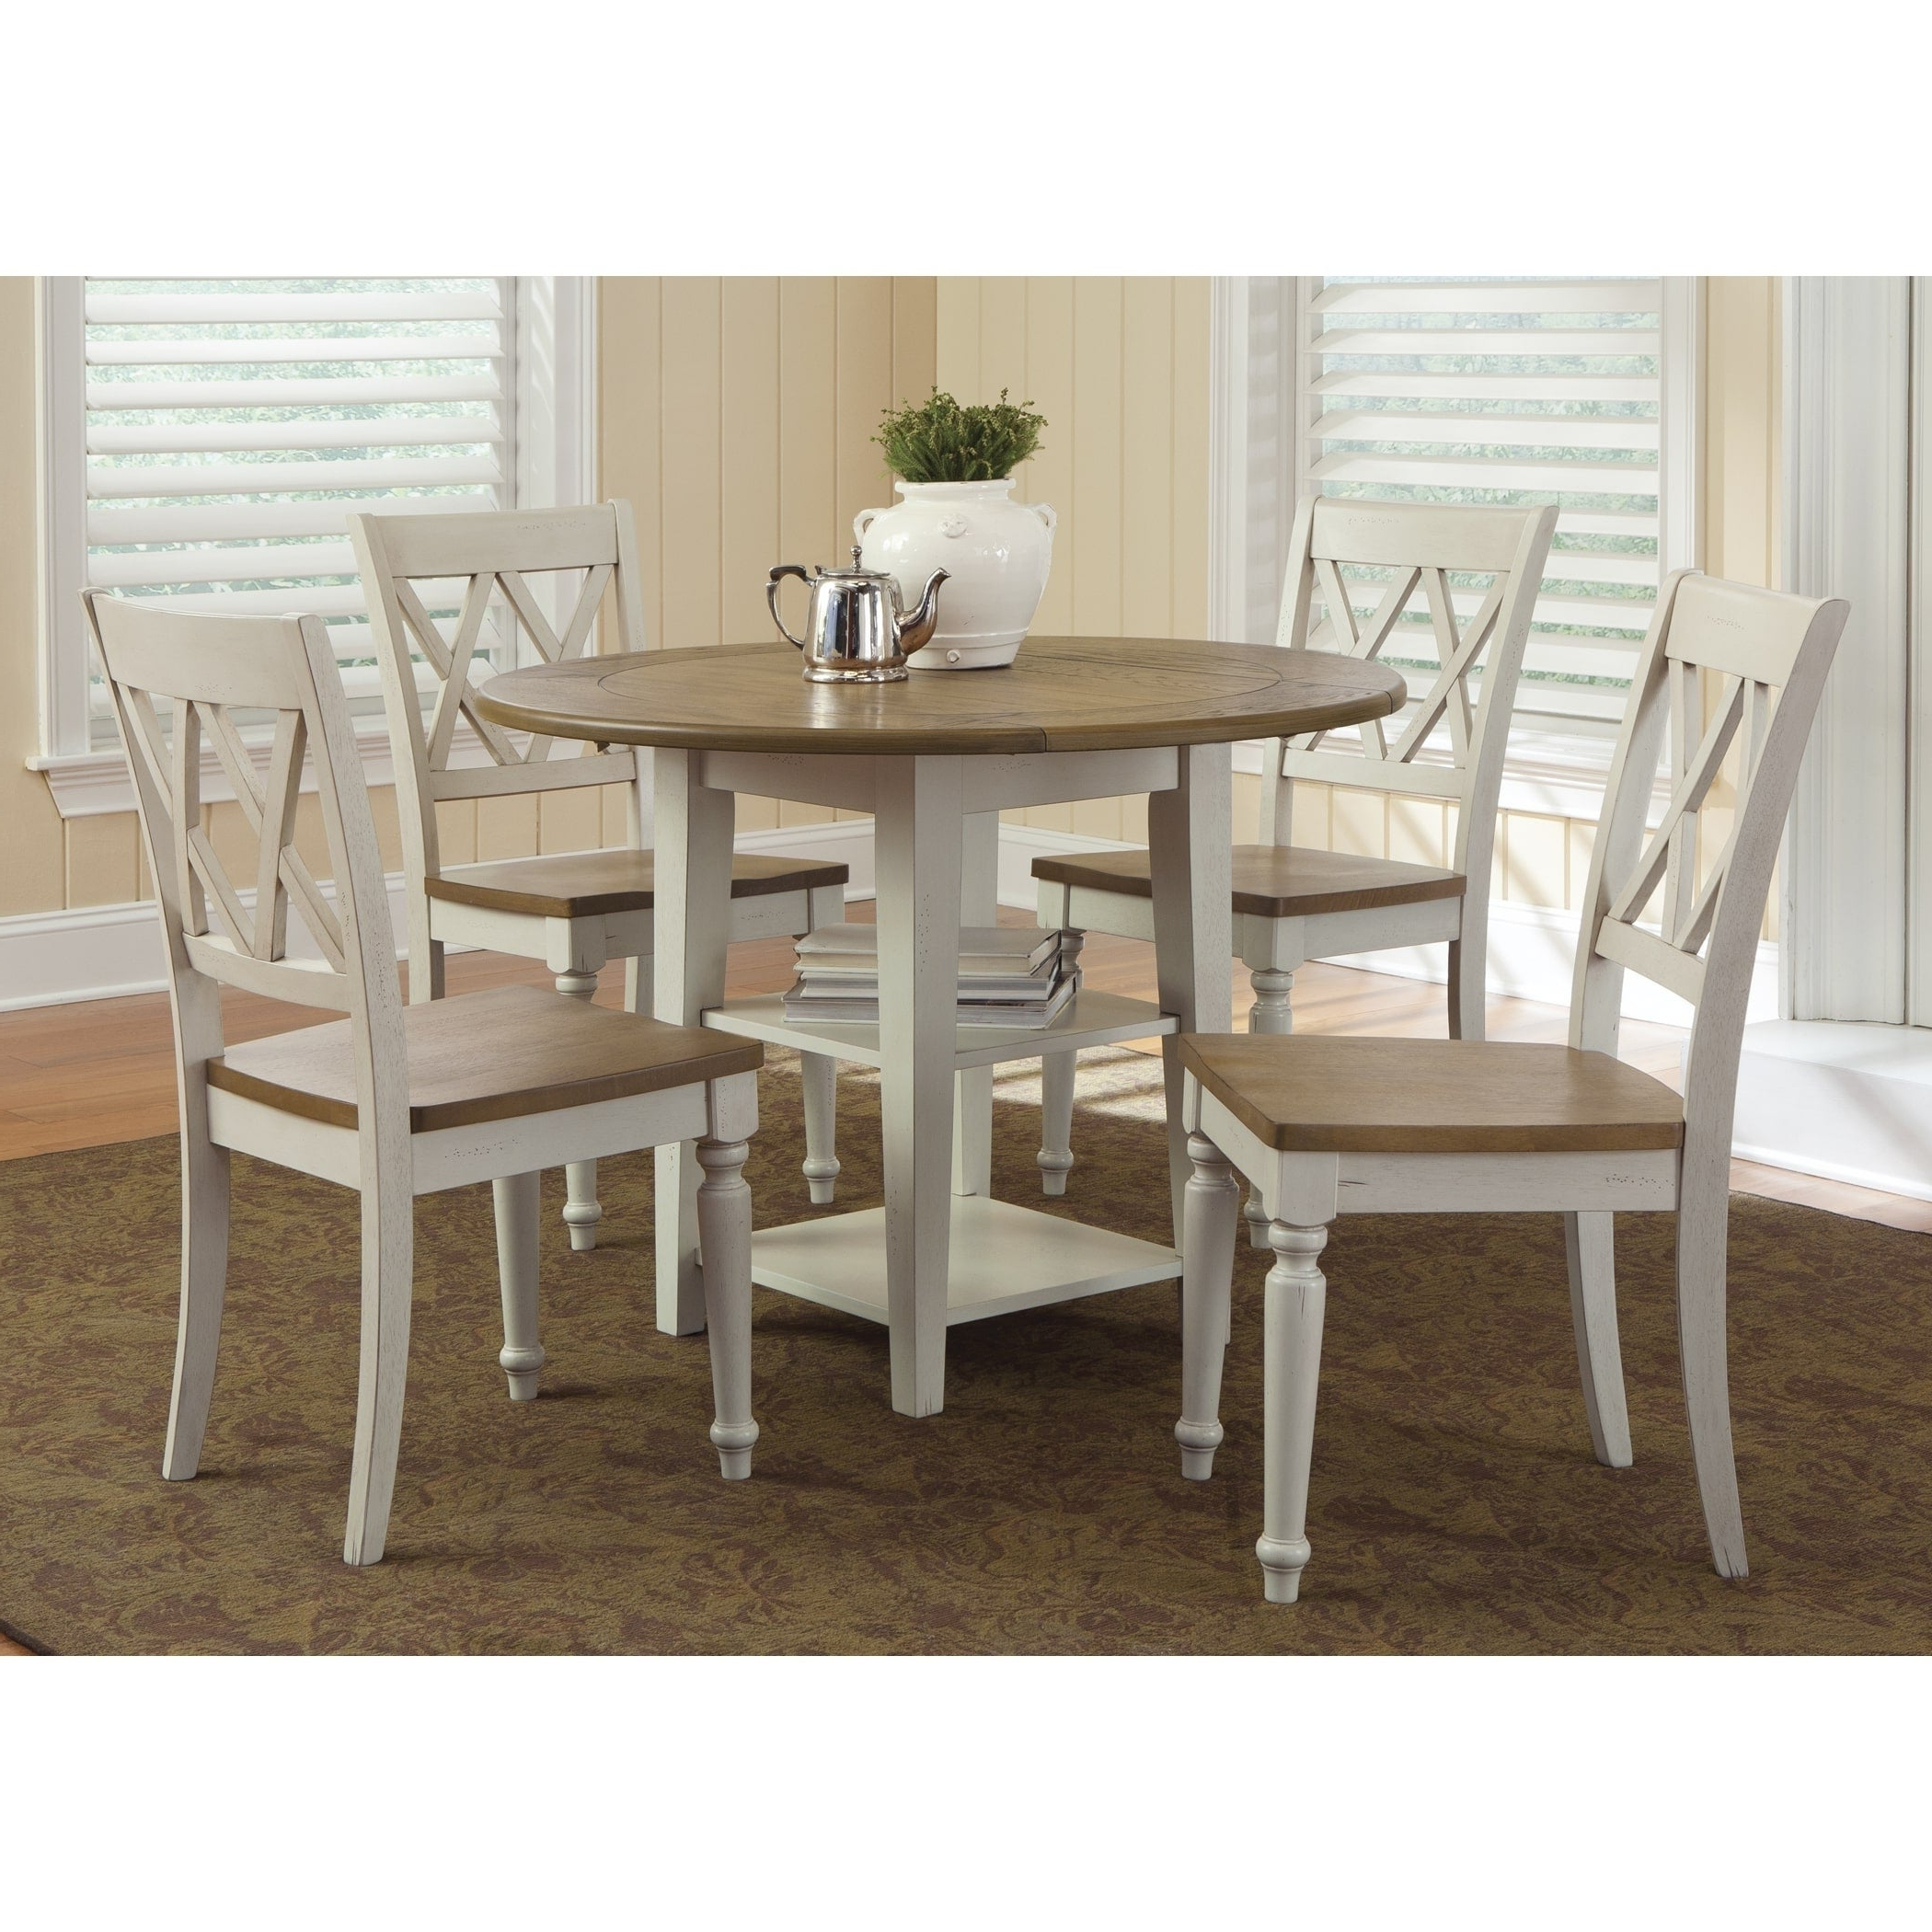 Most Recent Al Fresco Two Tone Transitional Drop Leaf Leg Table – Antique White With Transitional Driftwood Casual Dining Tables (View 11 of 25)